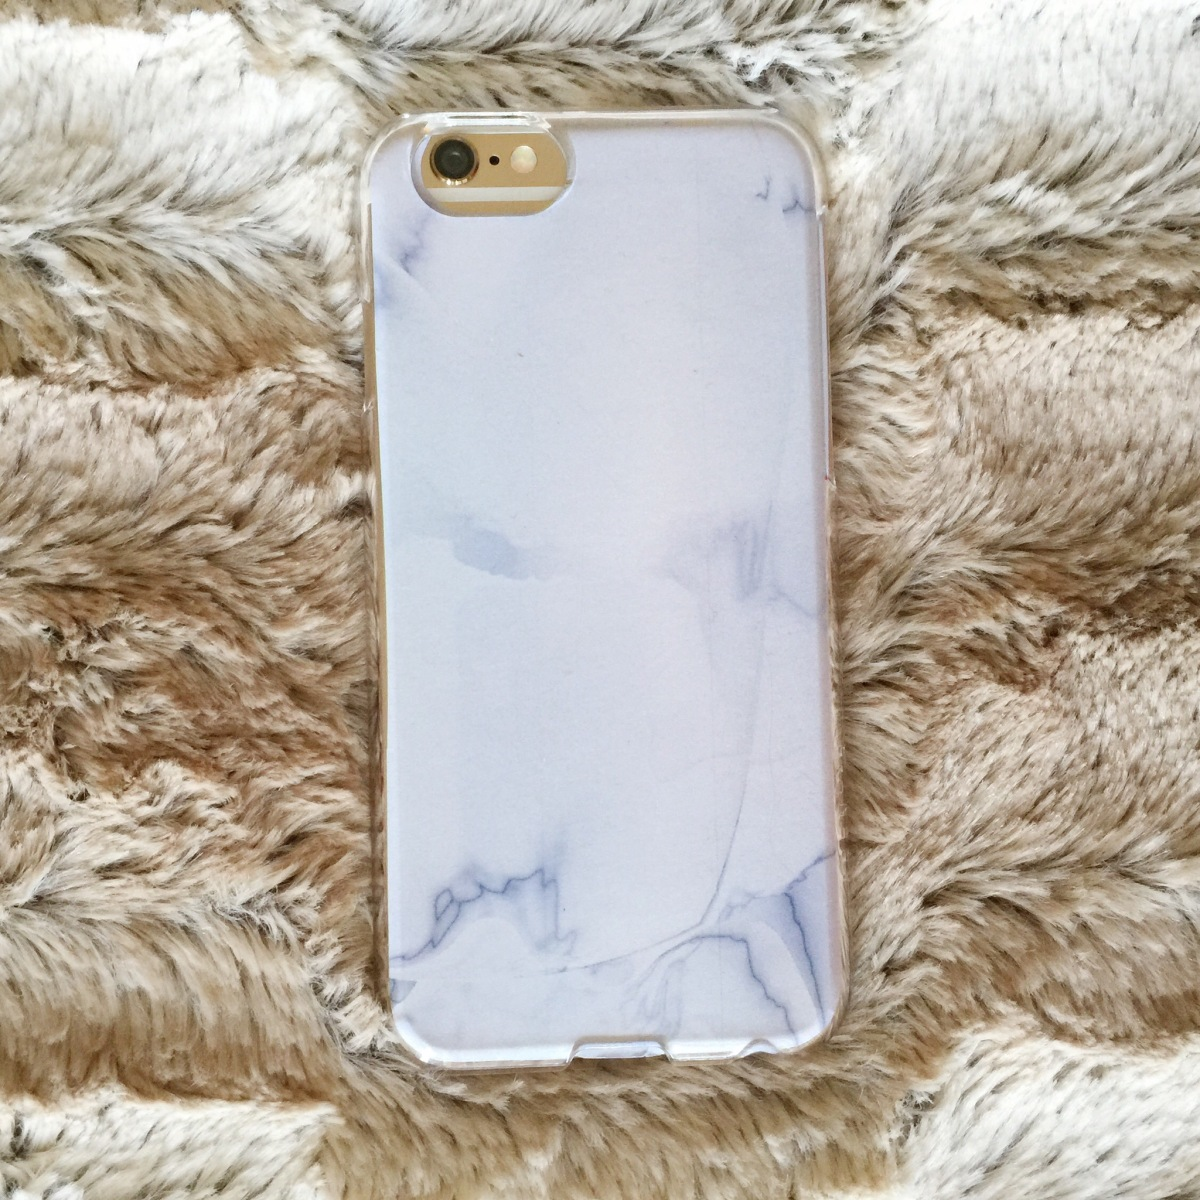 D.I.Y. iPhone Case